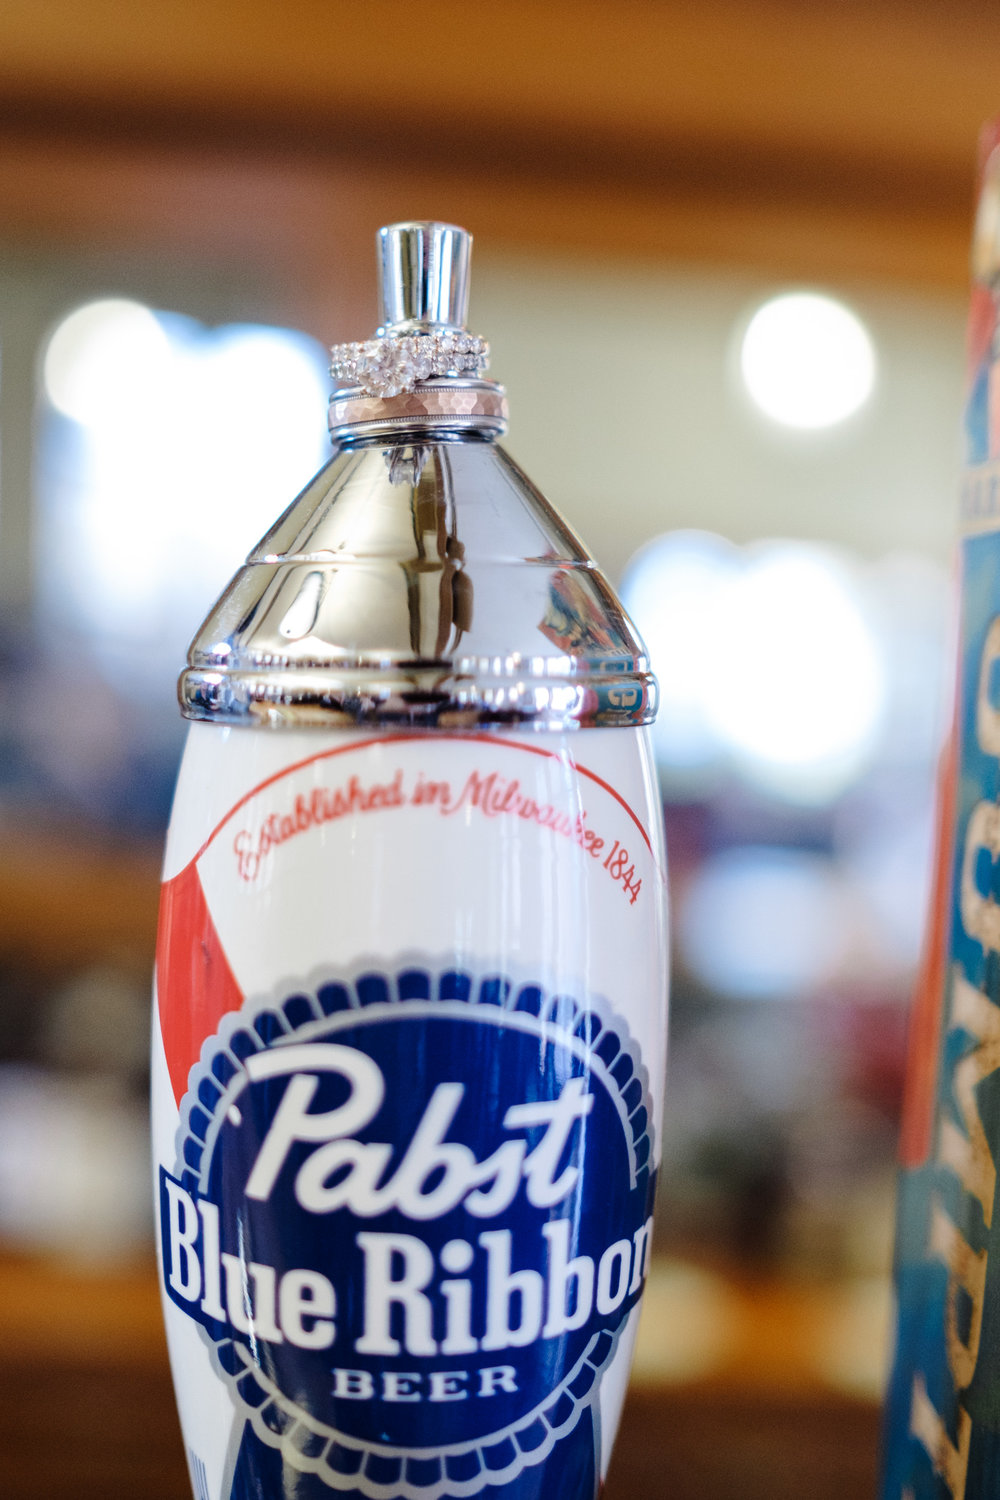 Detail ring photo of rose gold rings on pabst blue ribbon beer tap handle.